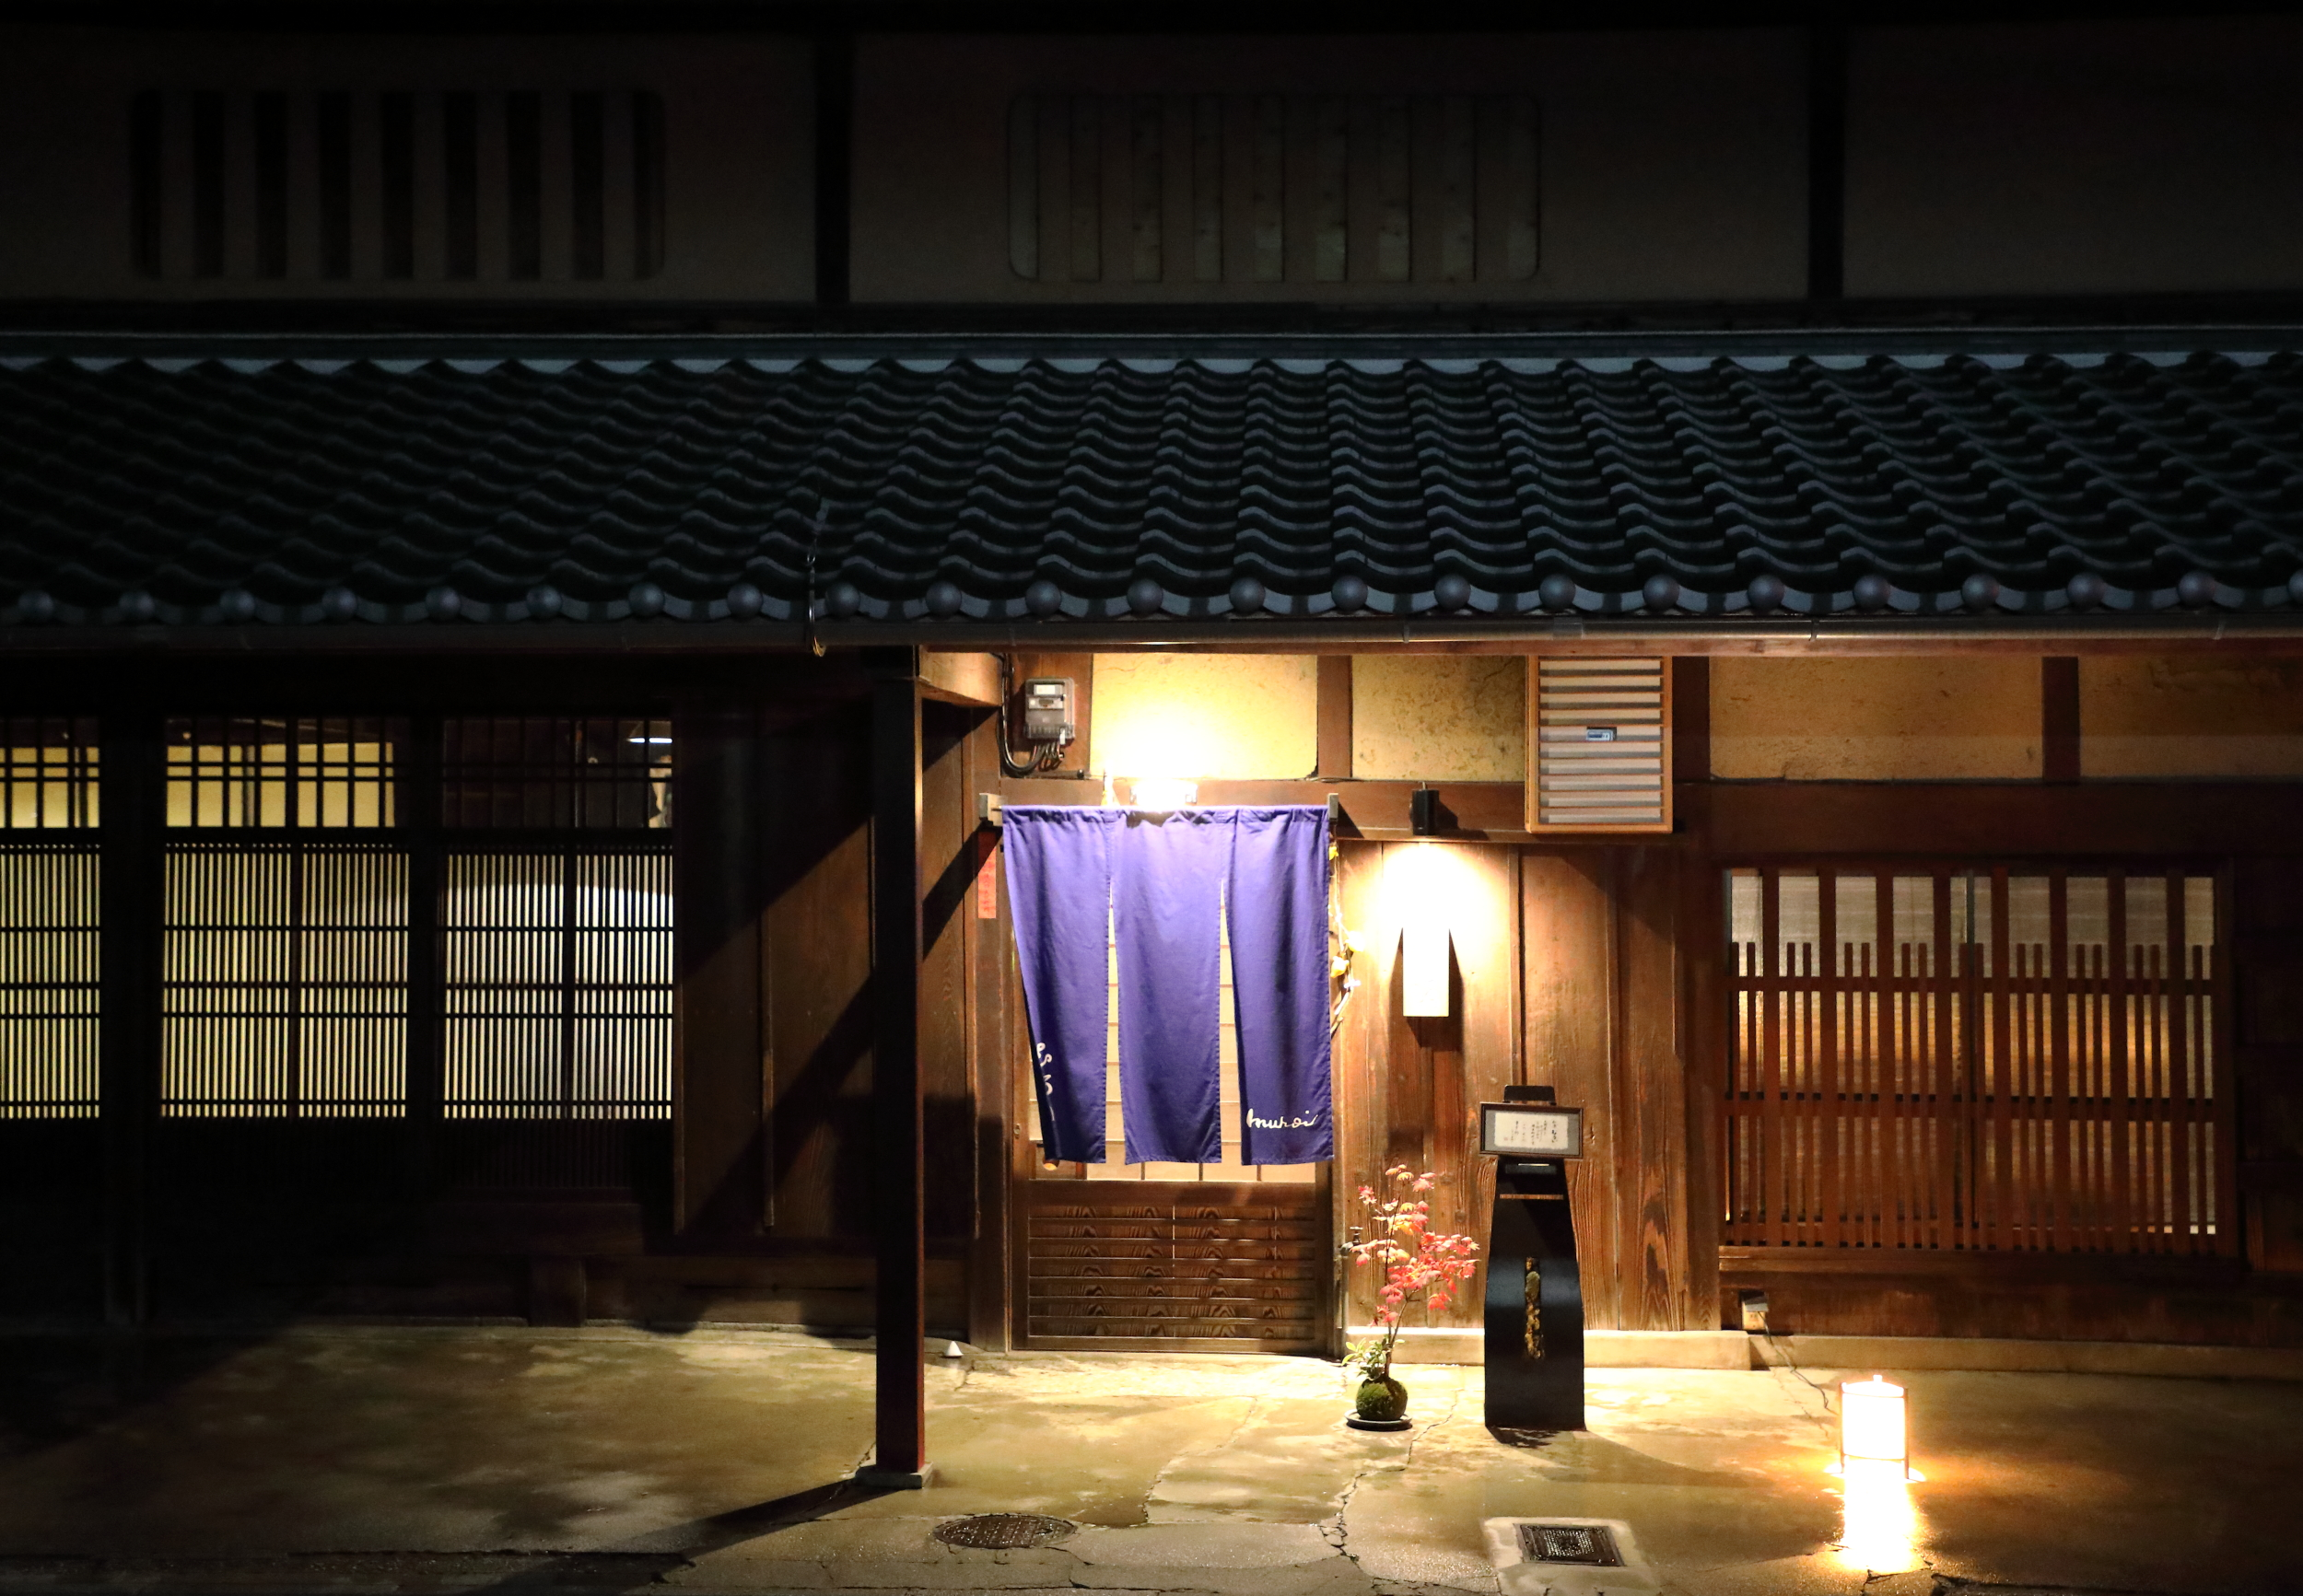 The earthy colors of the old  kominka , or farmhouse, that houses Muroi are typical of rural architecture in the mountainous areas of Kyoto prefecture.Muroi ready to receive guests for dinner in the evening.